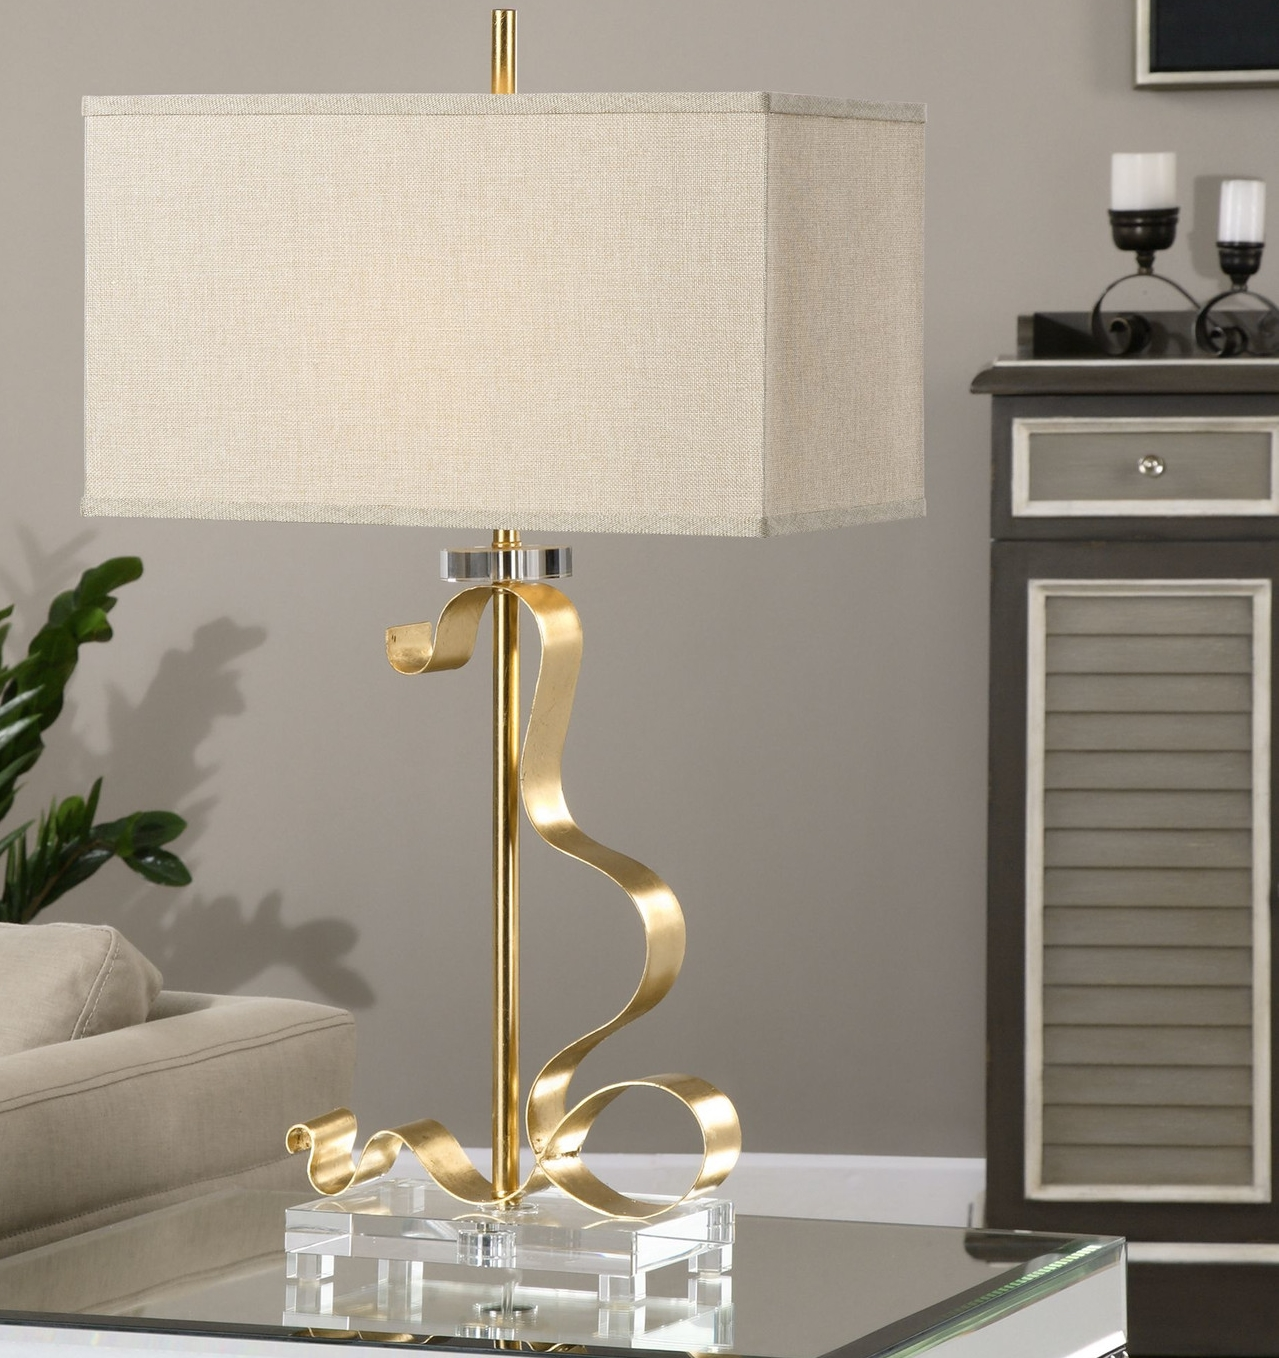 Camarena-31-H-Table-Lamp-with-Rectangle-Shade-27042-1.jpg